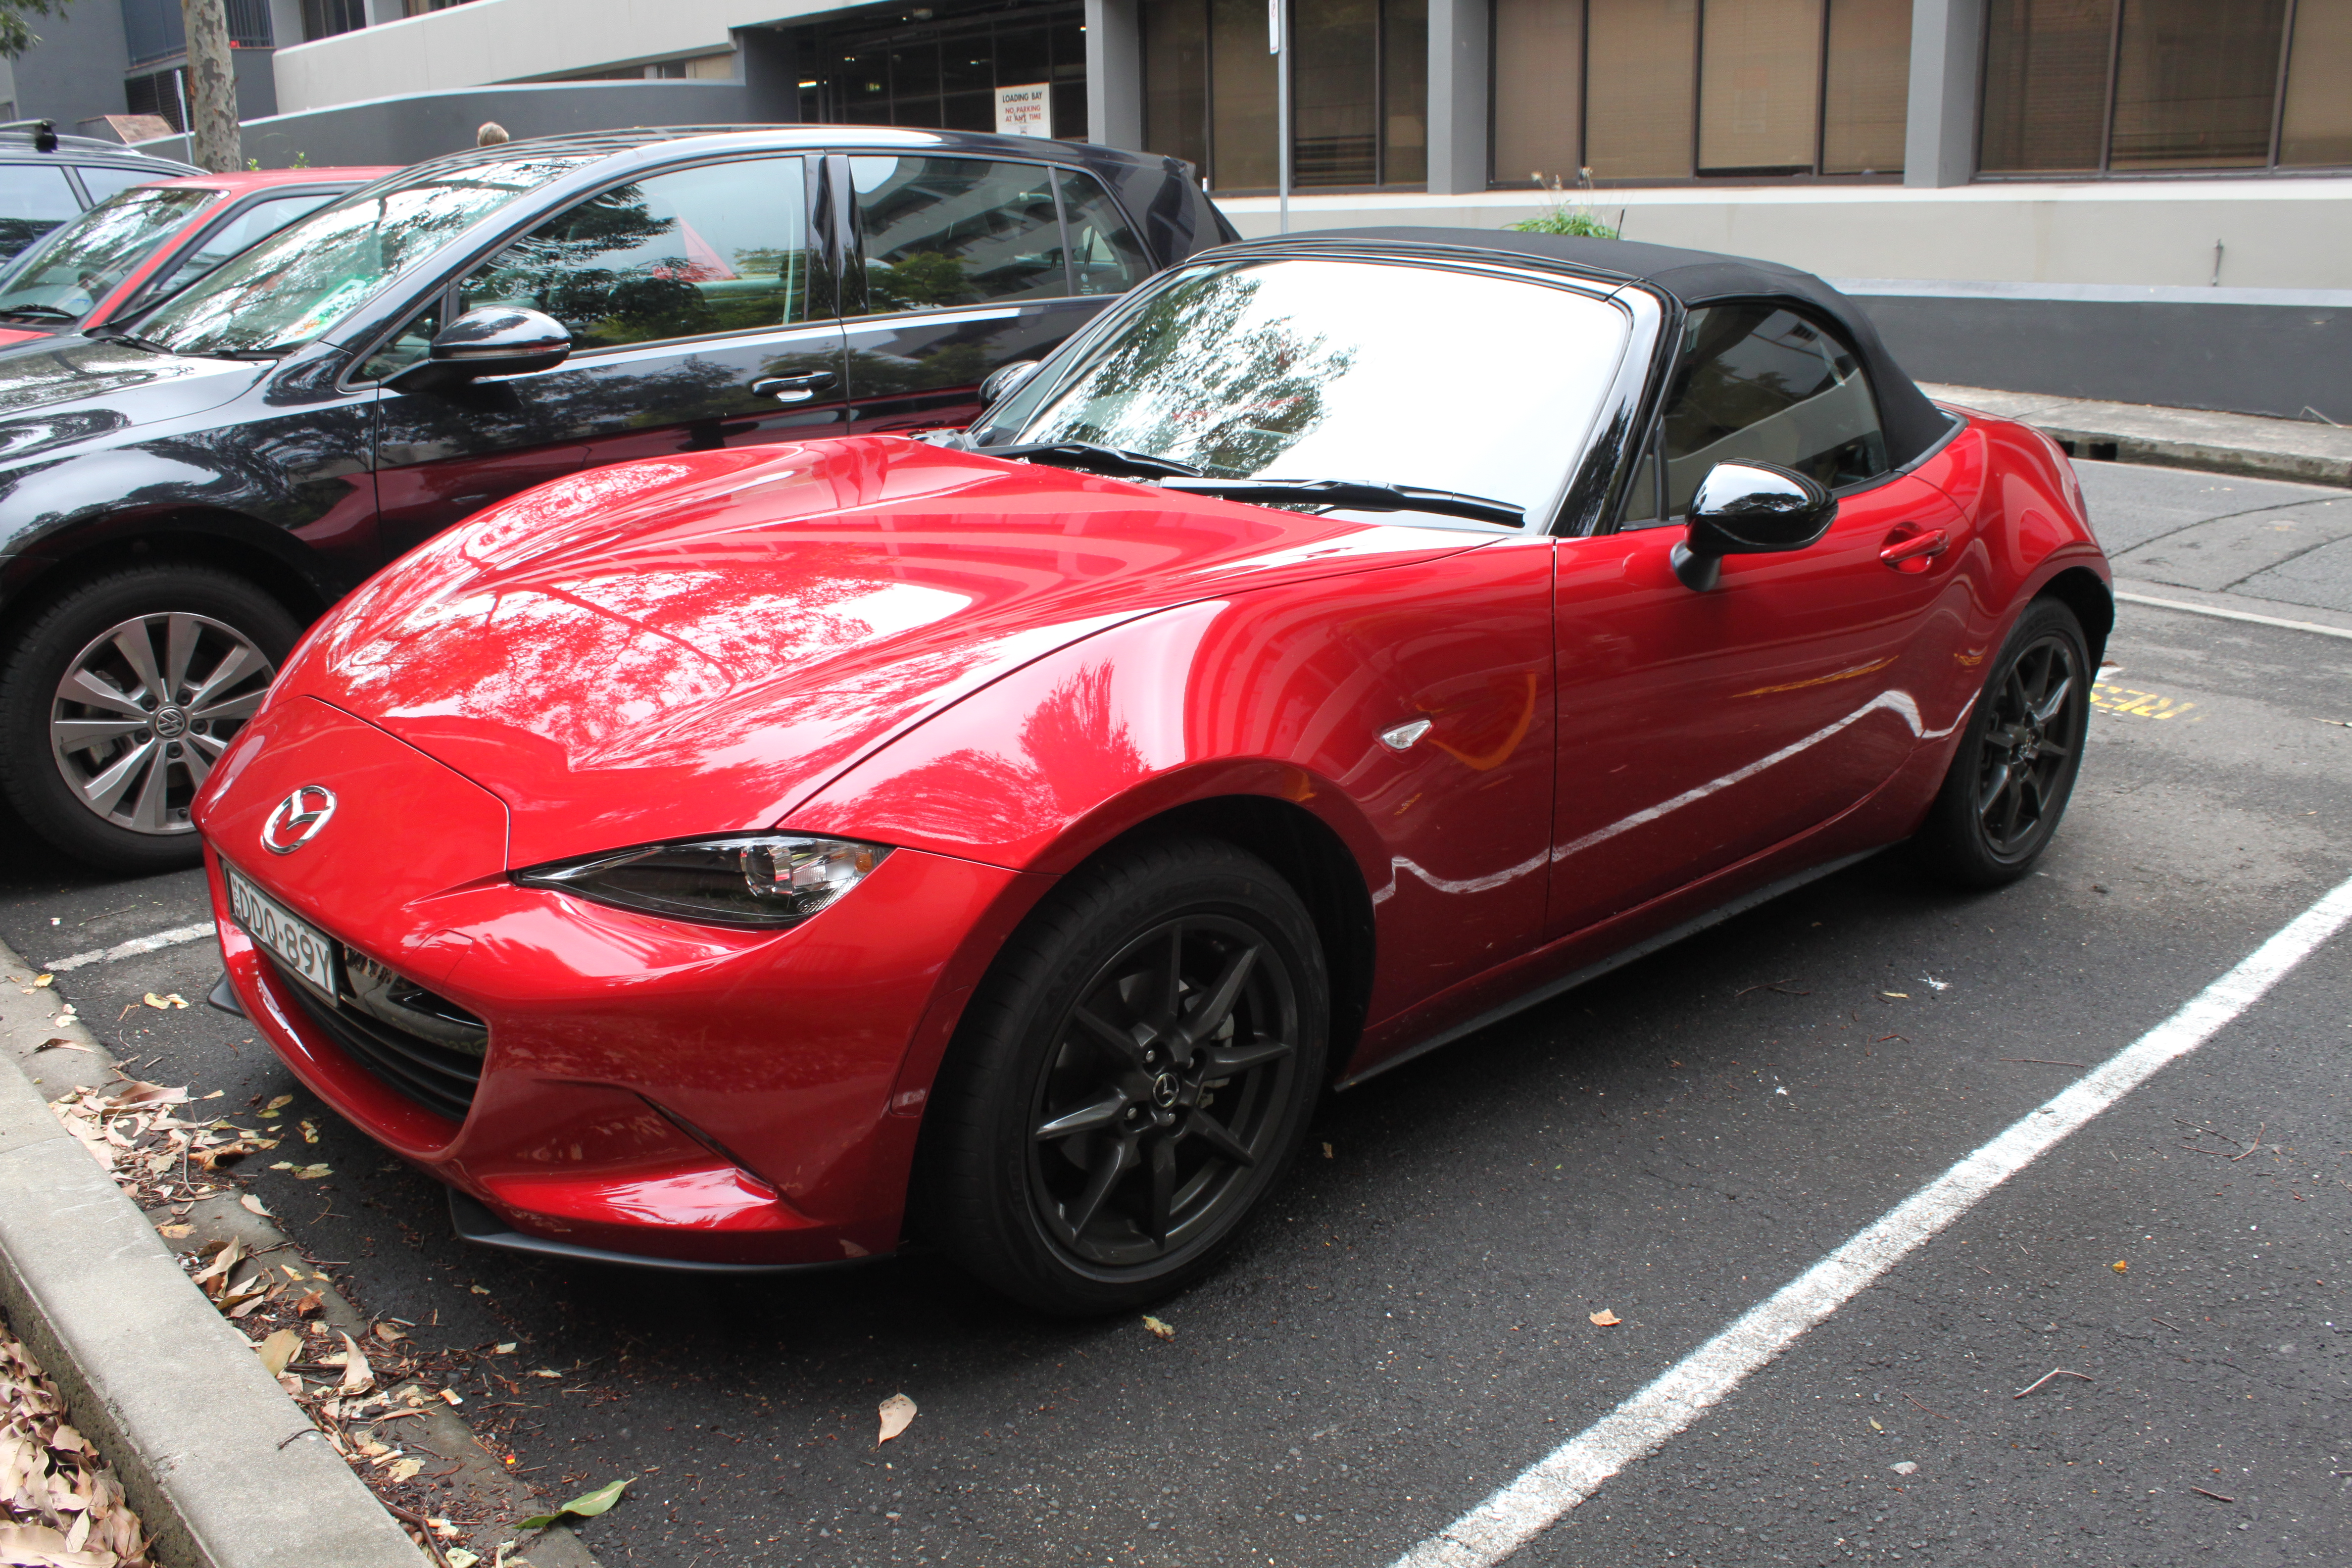 file:2016 mazda mx-5 (nd) roadster gt 1.5 convertible (25995812902